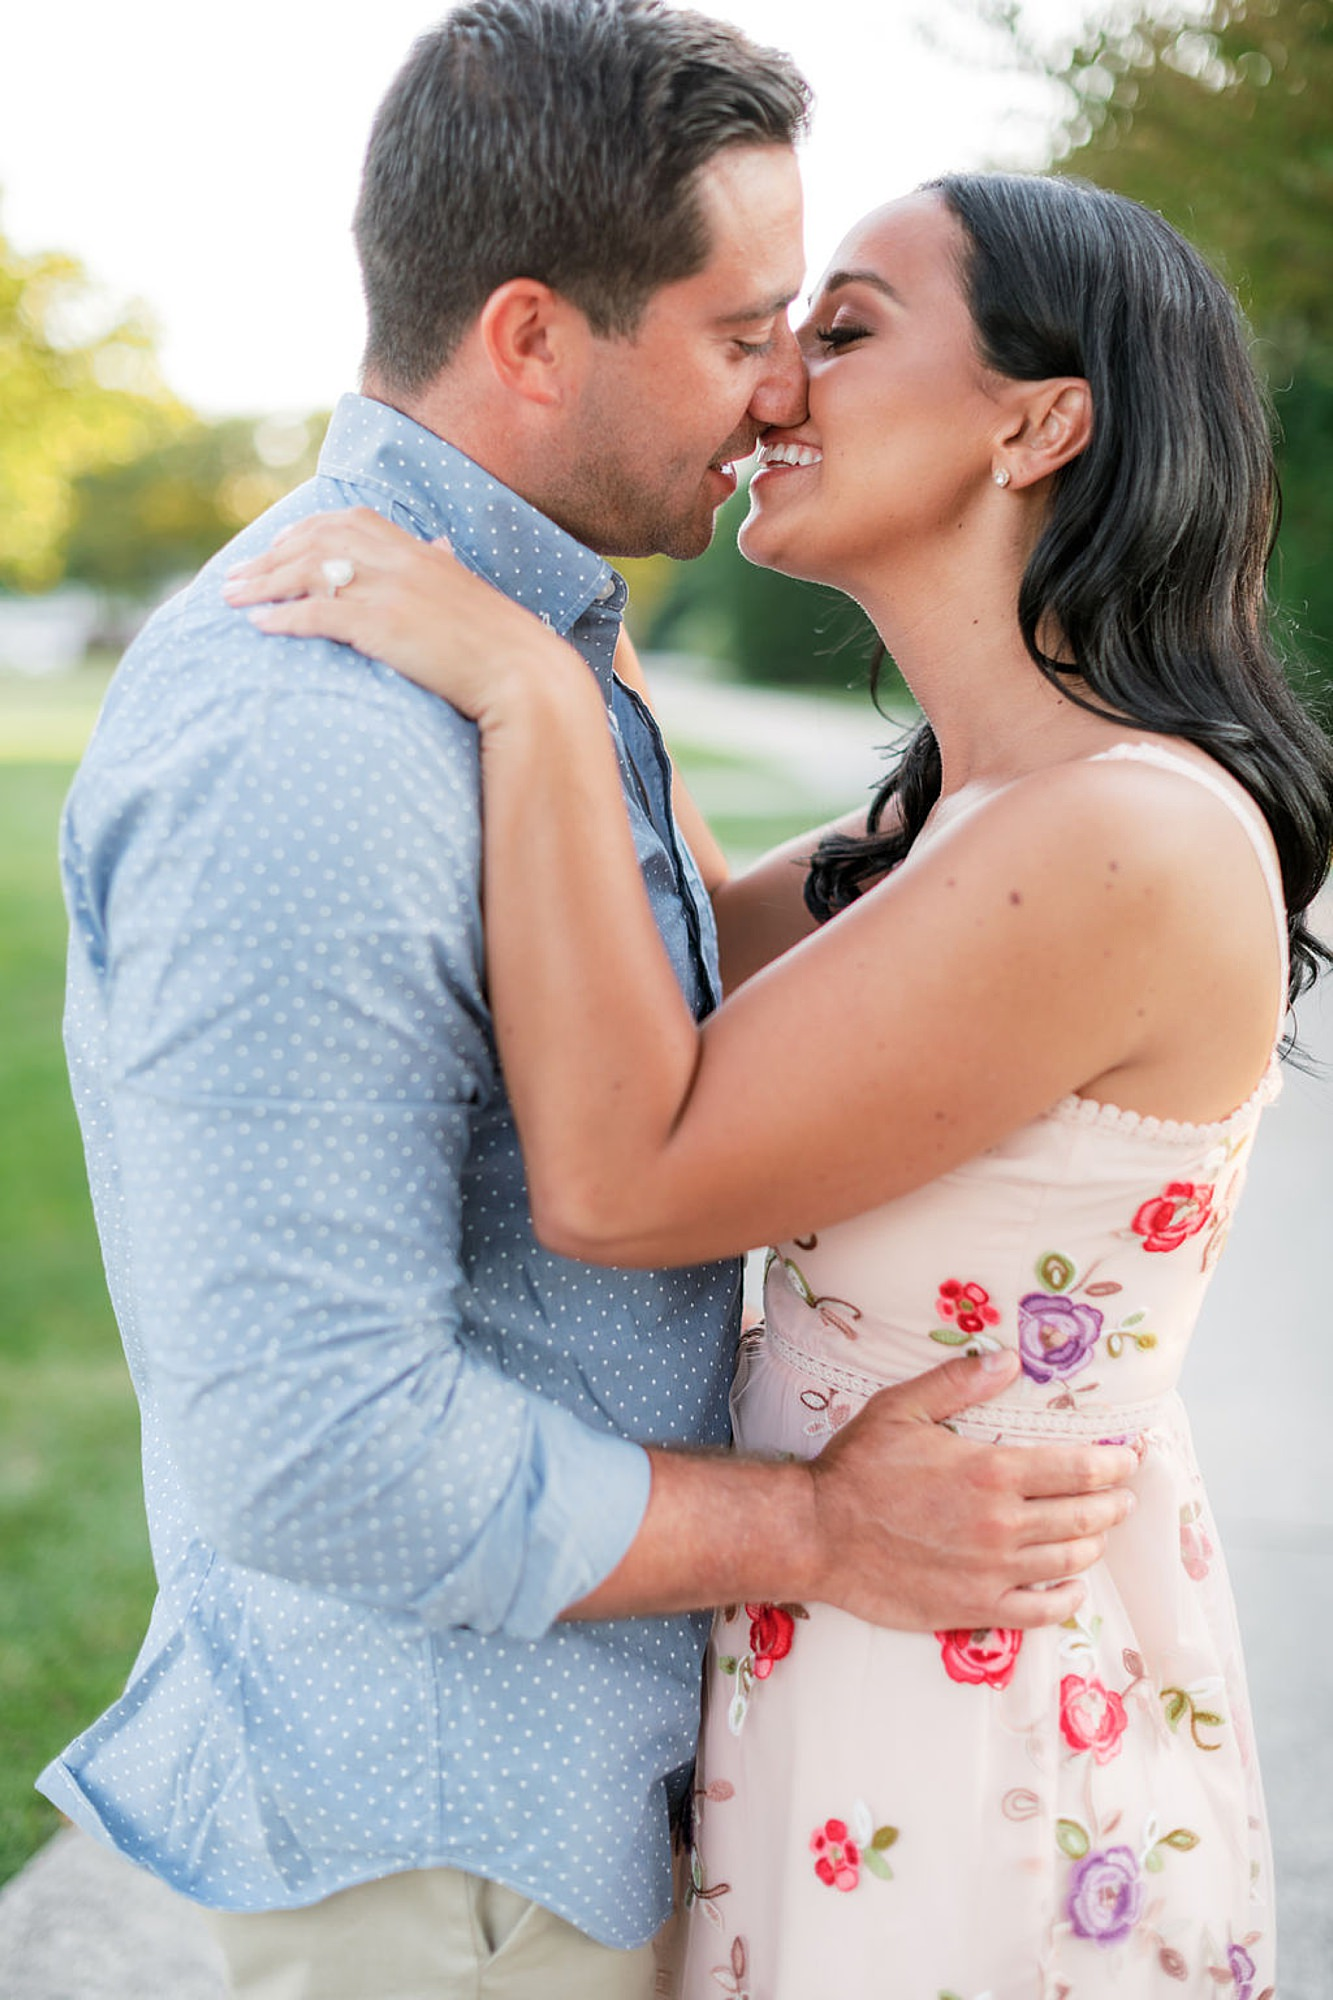 Airy and Bright Engagement Photography in Ocean City NJ by Magdalena Studios 0017